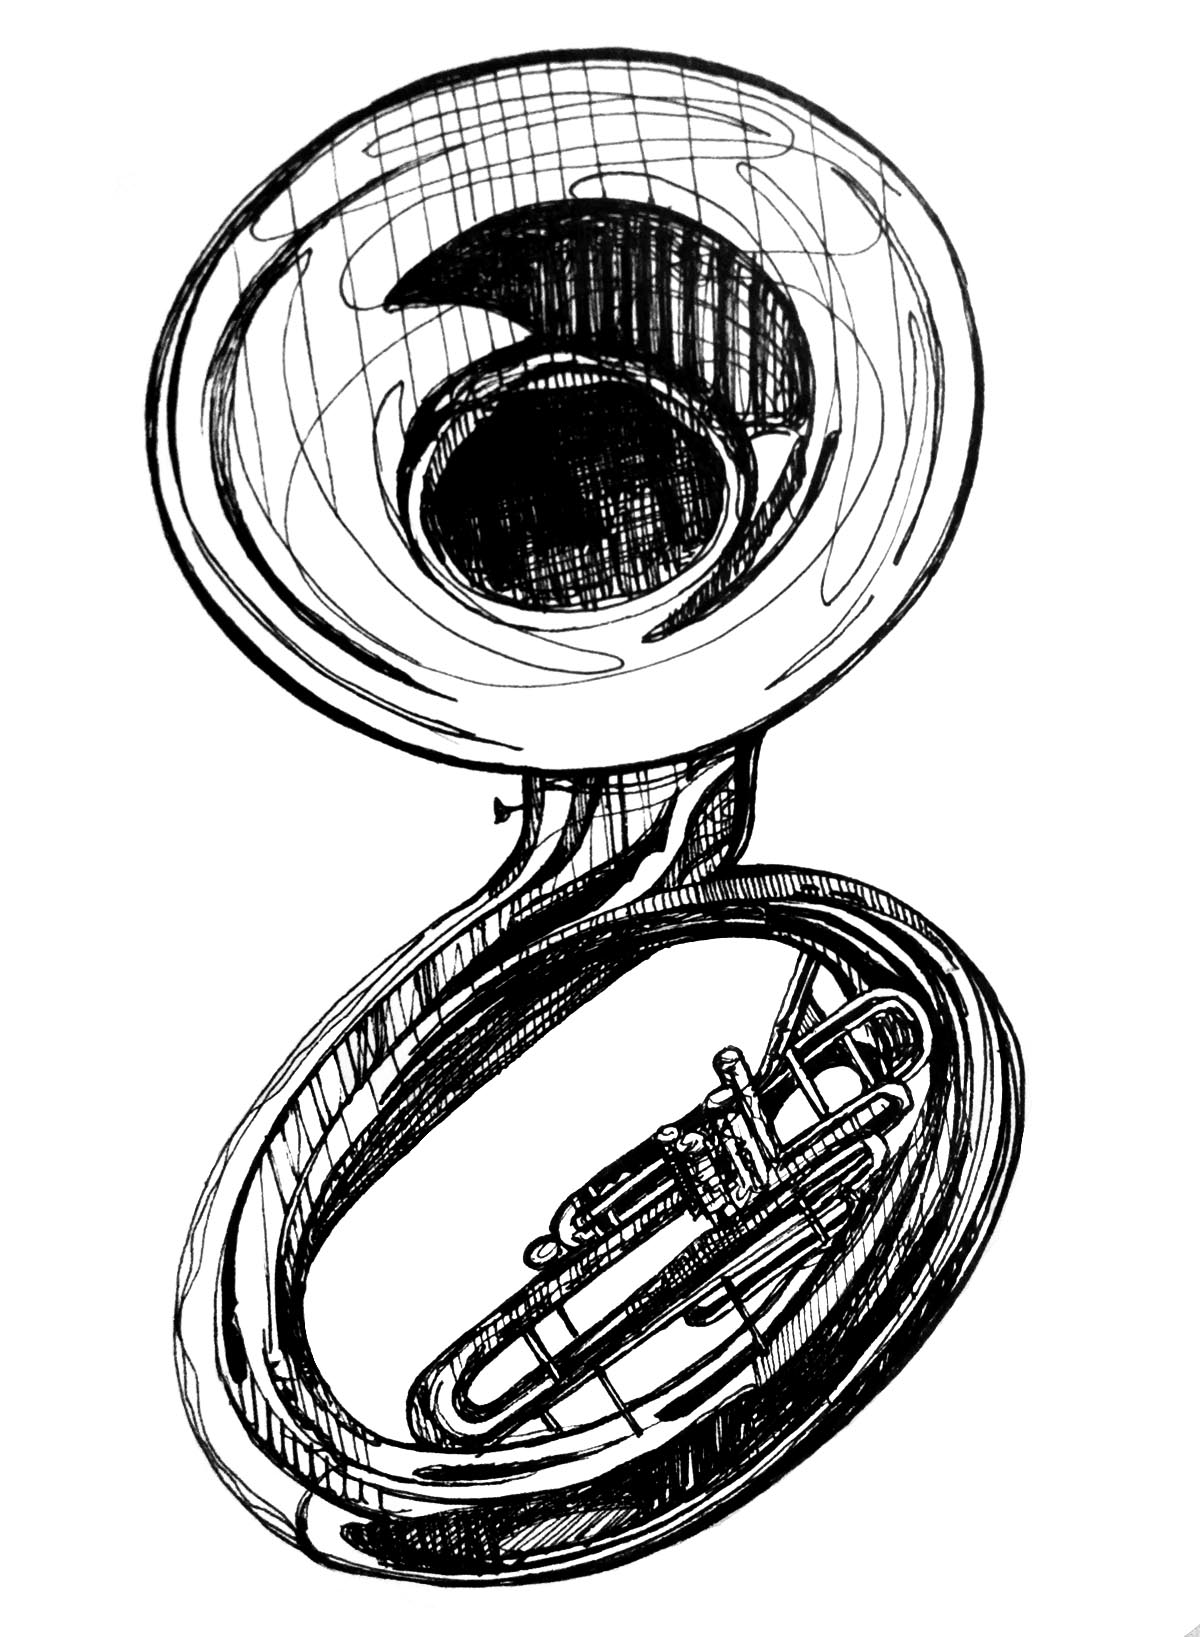 Sousaphone clipart graphic free Free Sousaphone Cliparts, Download Free Clip Art, Free Clip ... graphic free